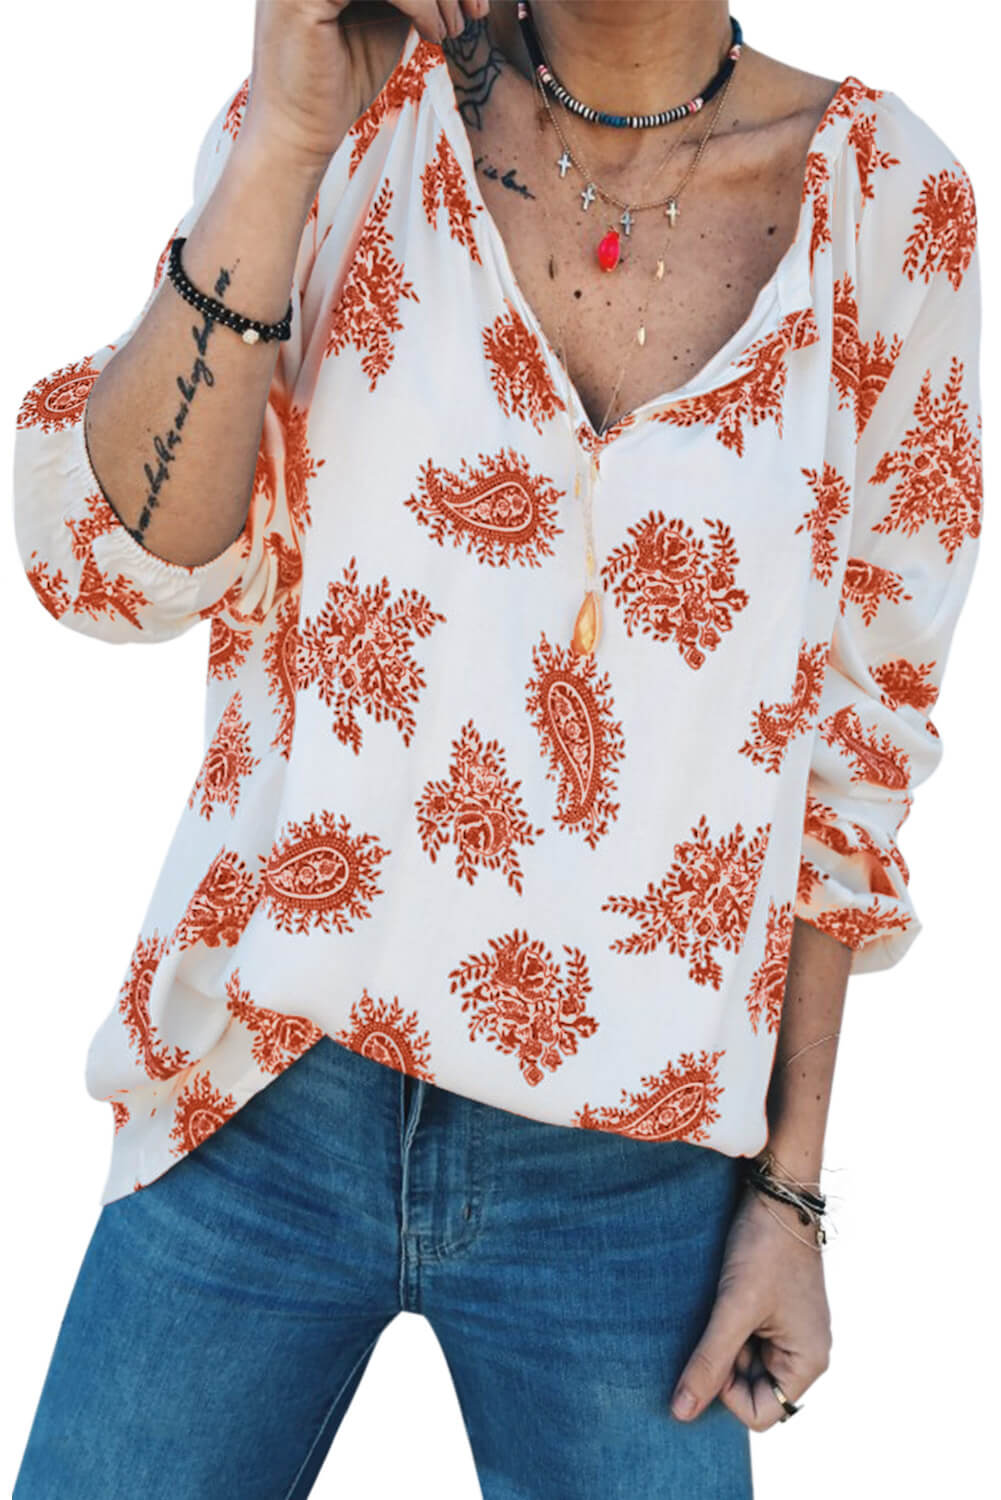 Orange 3/4 Sleeve Print V Neck Loose Casual Blouses Top Long Sleeve Tops Discount Designer Fashion Clothes Shoes Bags Women Men Kids Children Black Owned Business